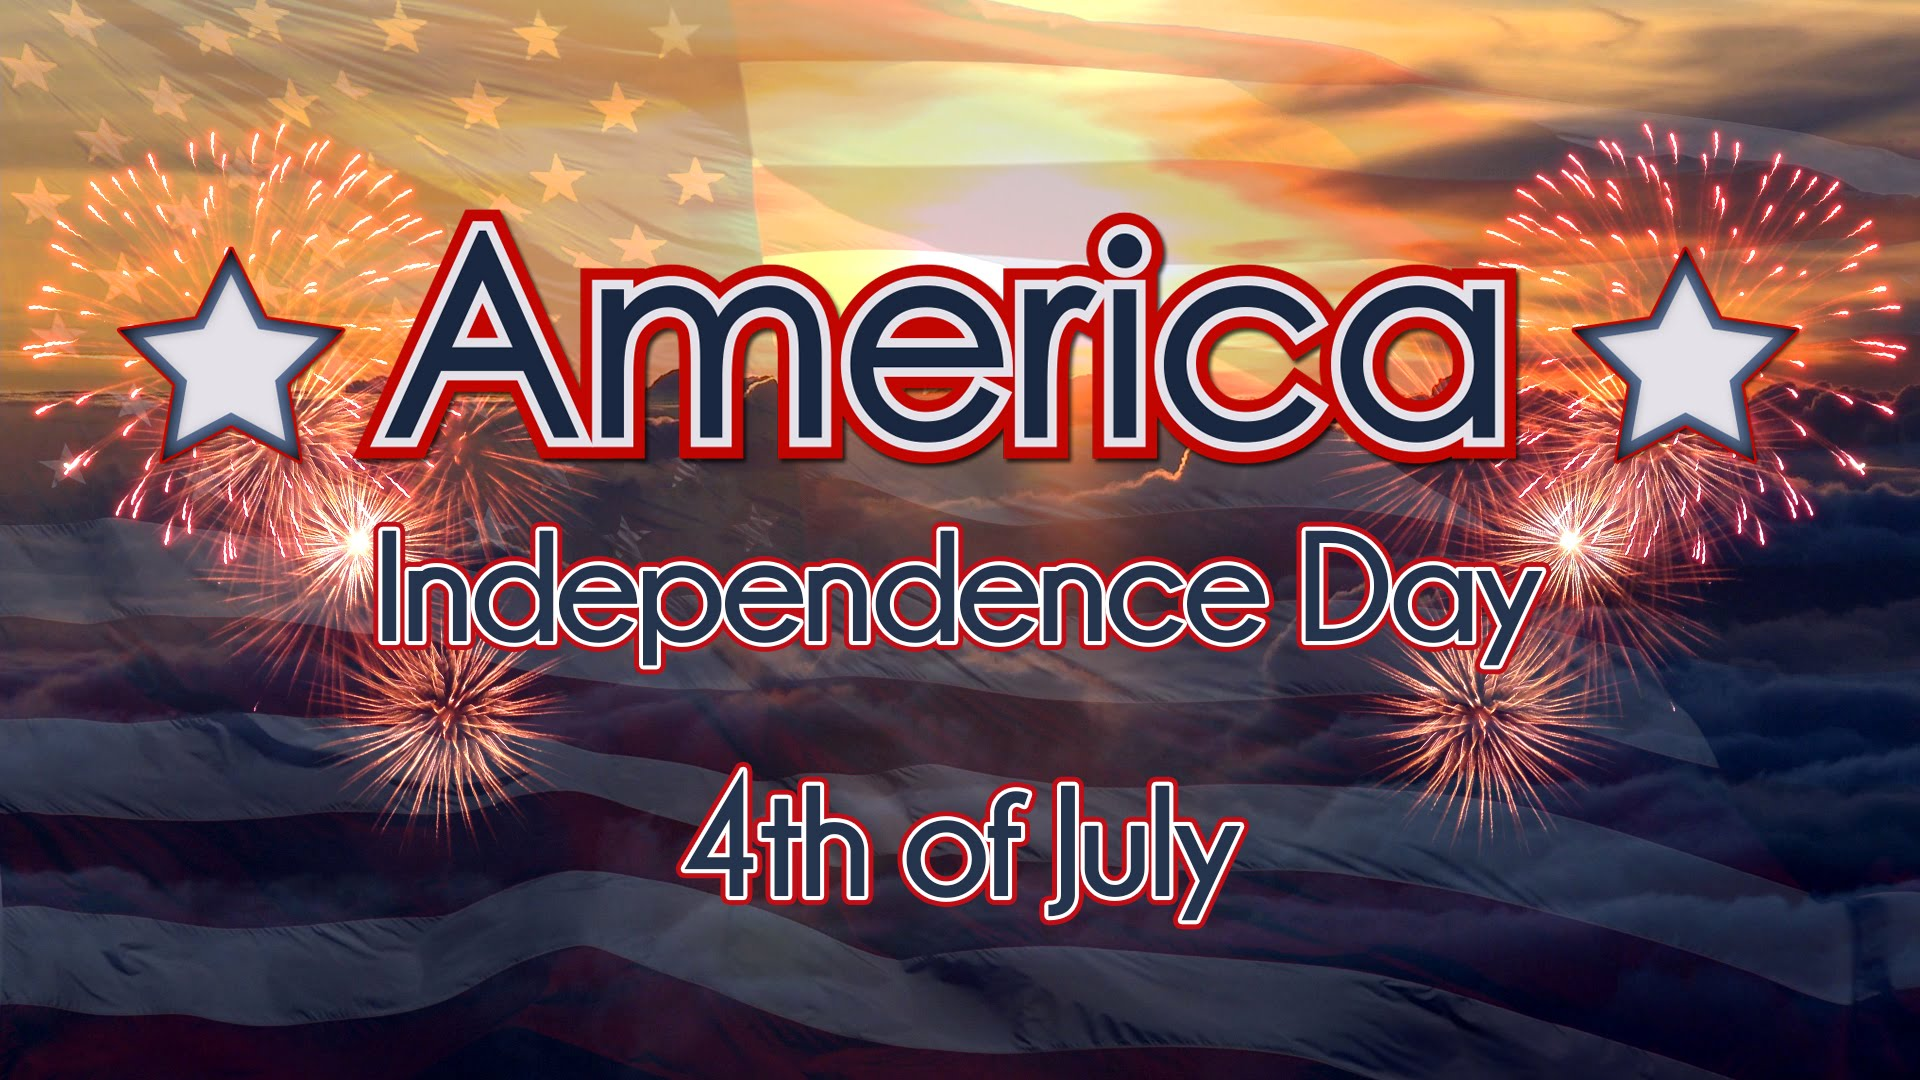 4th july wishes greeting free desktop mobile background hd wallpaper